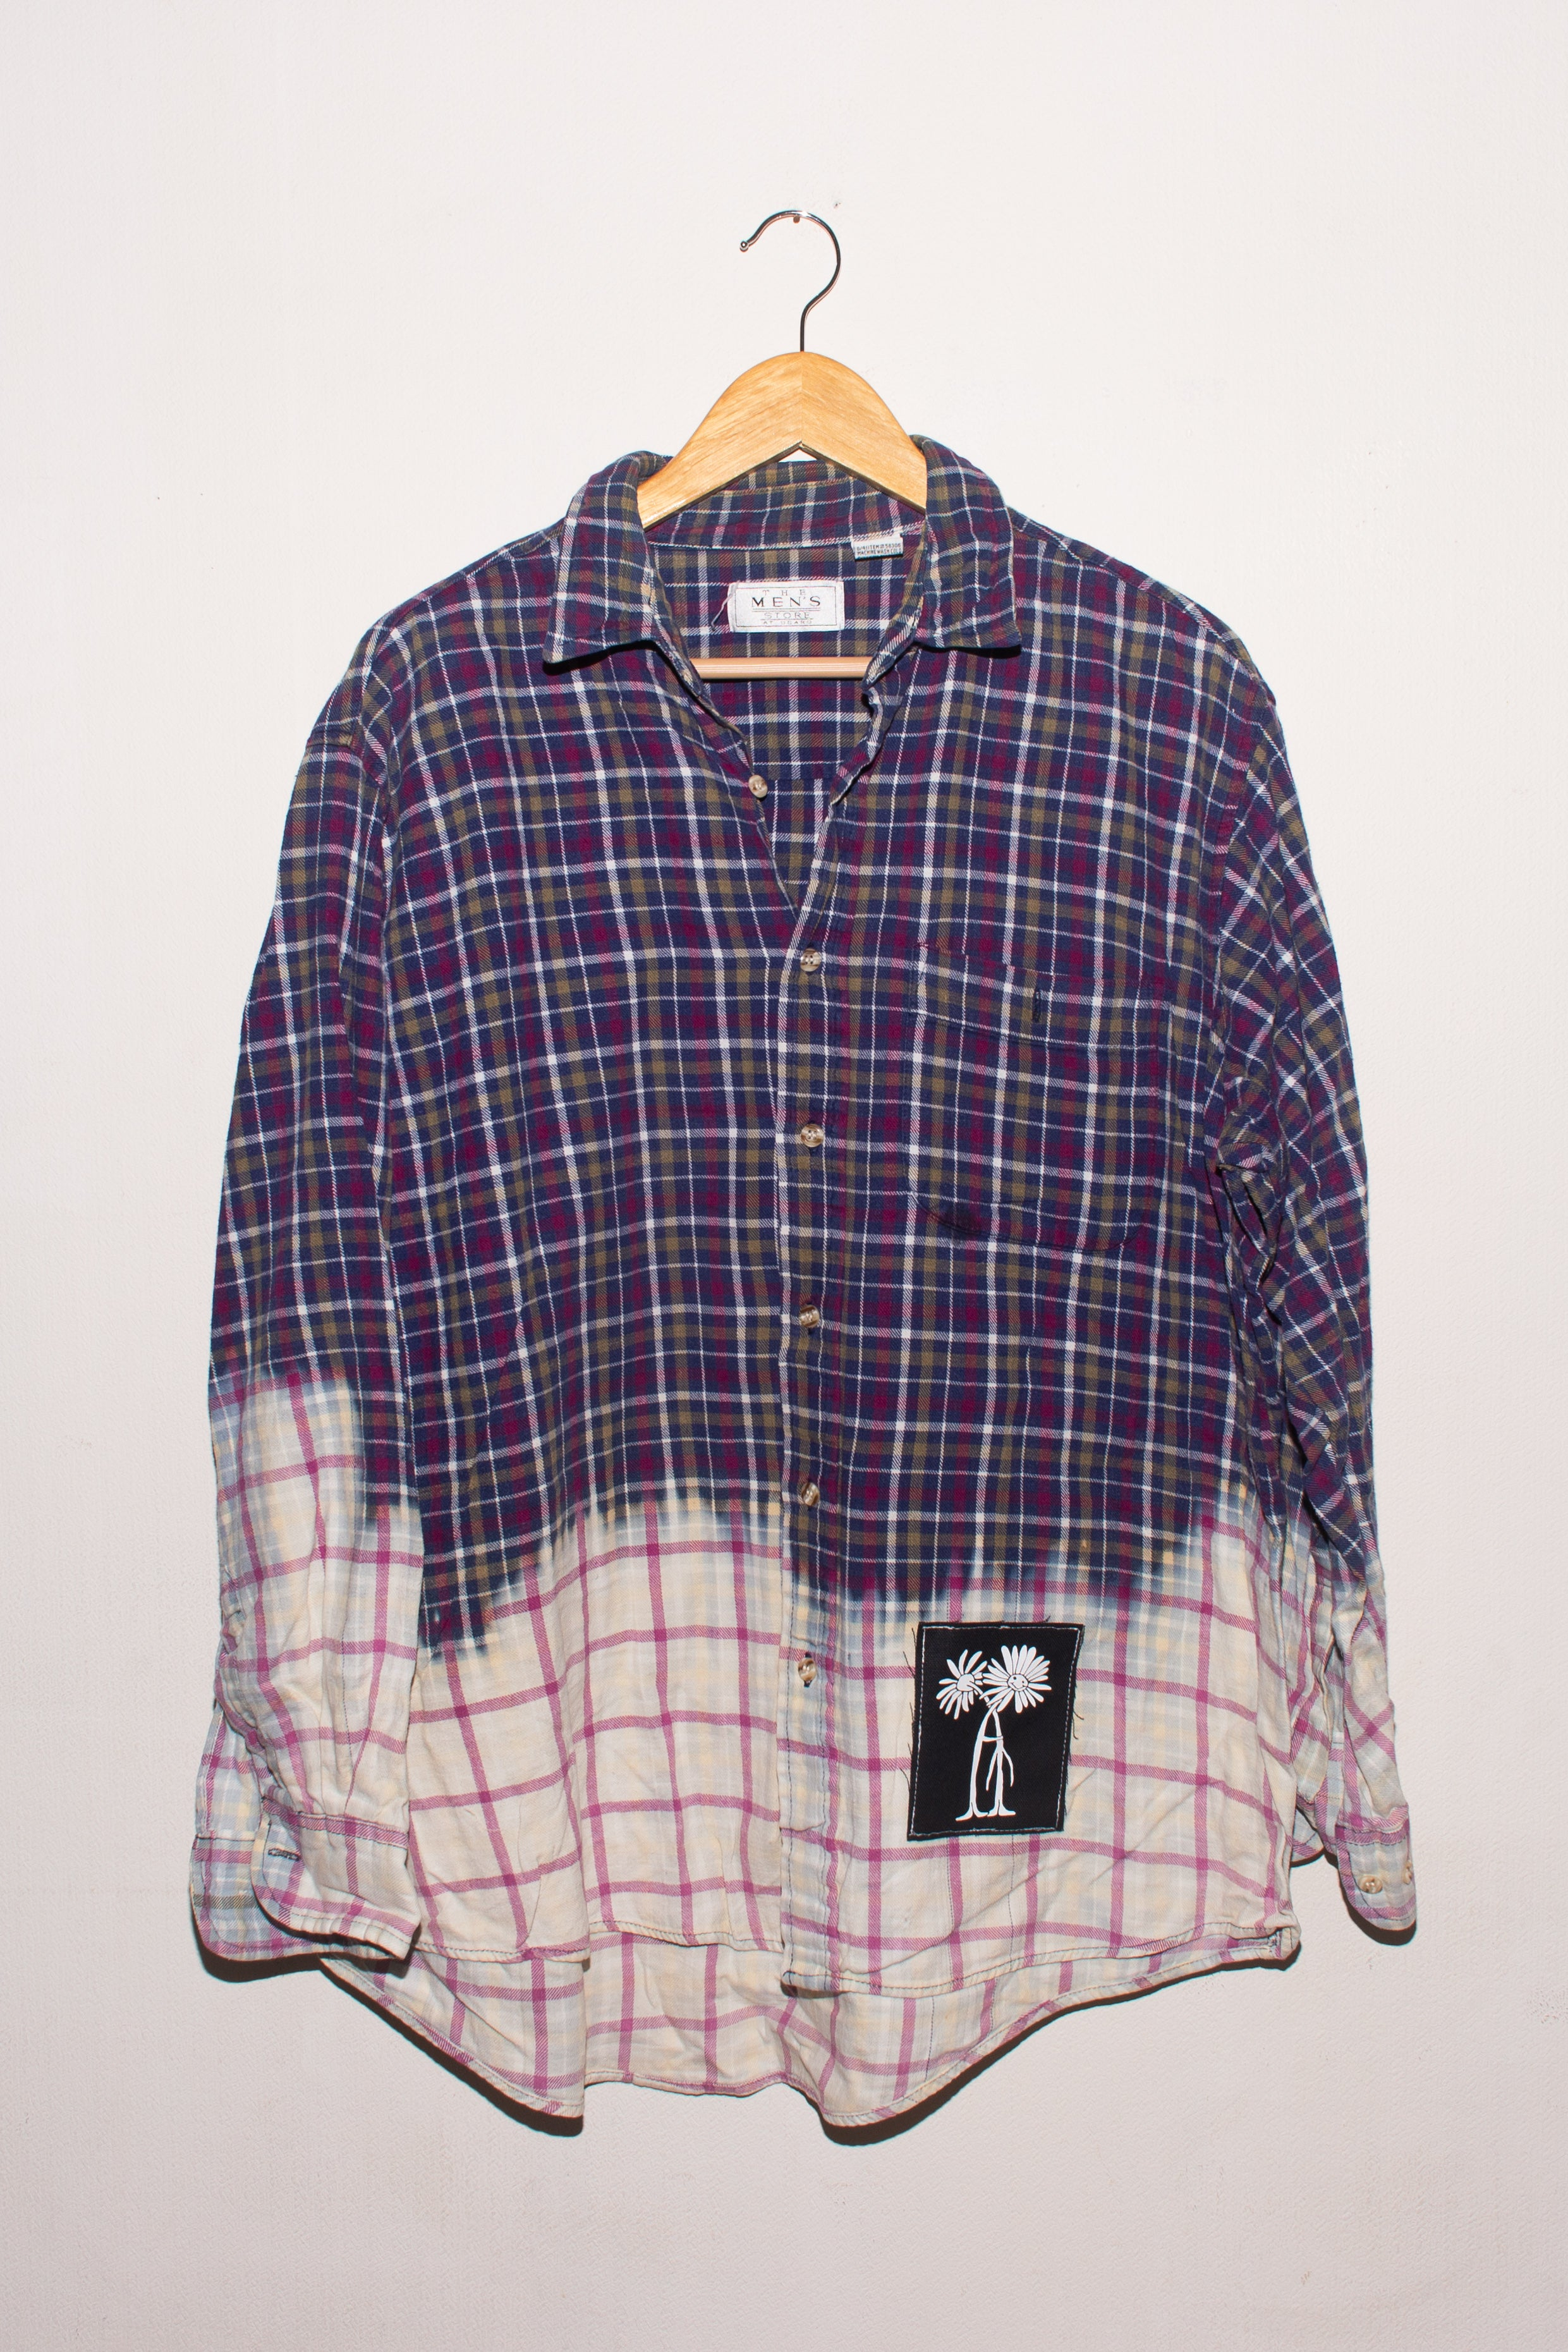 Sears flannel